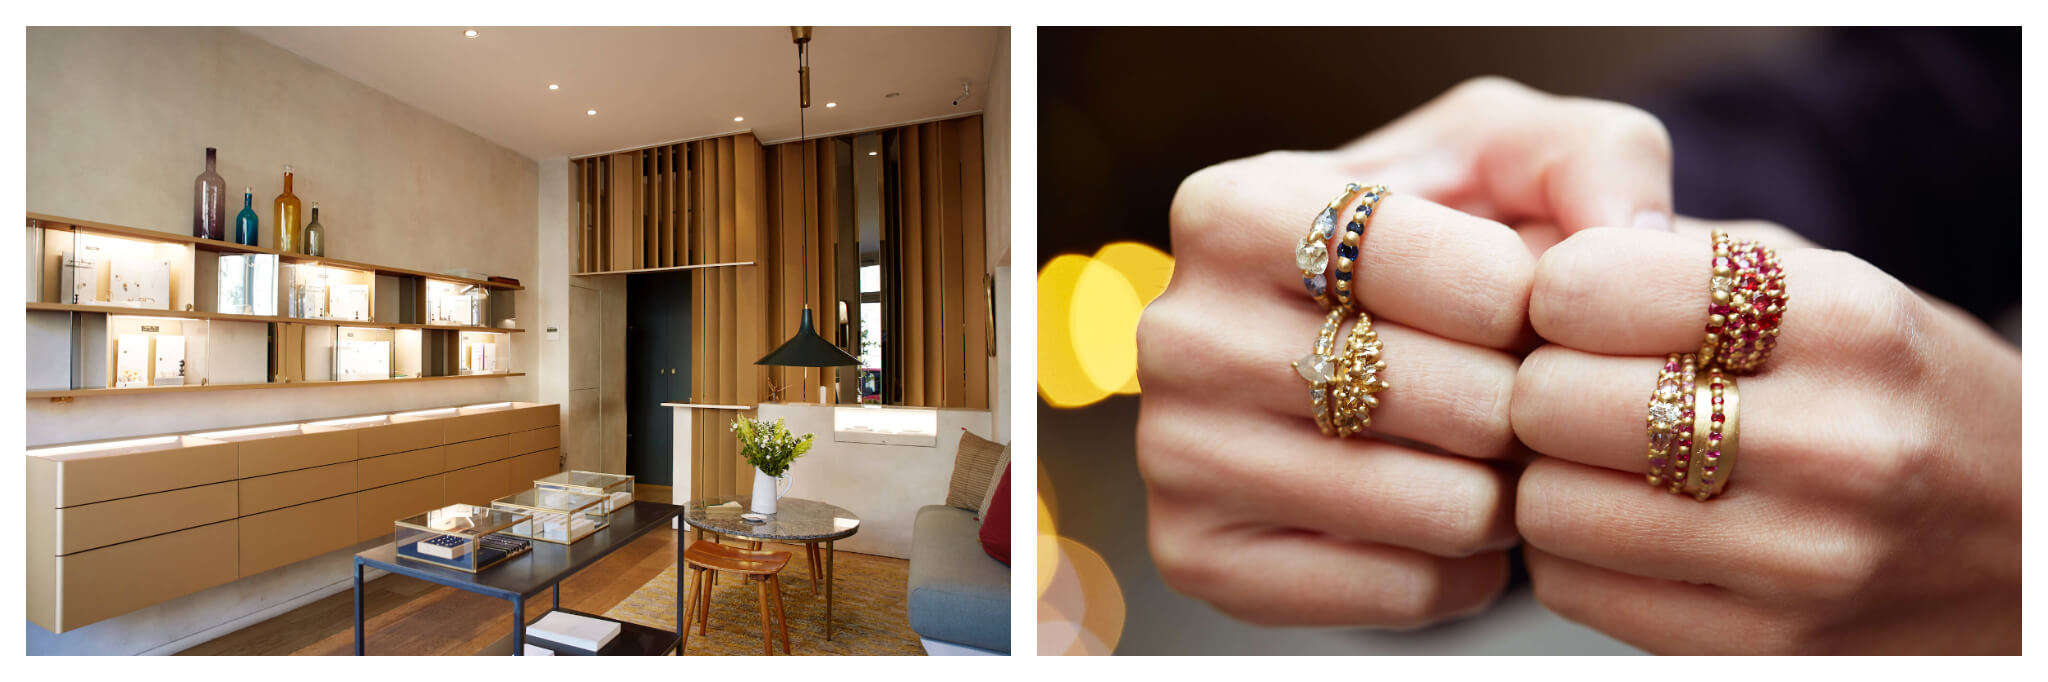 """On left: At White Bird, with three Paris locations, shoppers can peruse the polished displays for an international curation of jewelry by independent designers. On right: Multi-colored and dotted with diamonds, the gold rings designed by Polly Wales put the """"statement"""" in statement jewelry. Her collection is available at White Bird, which has three locations in Paris."""